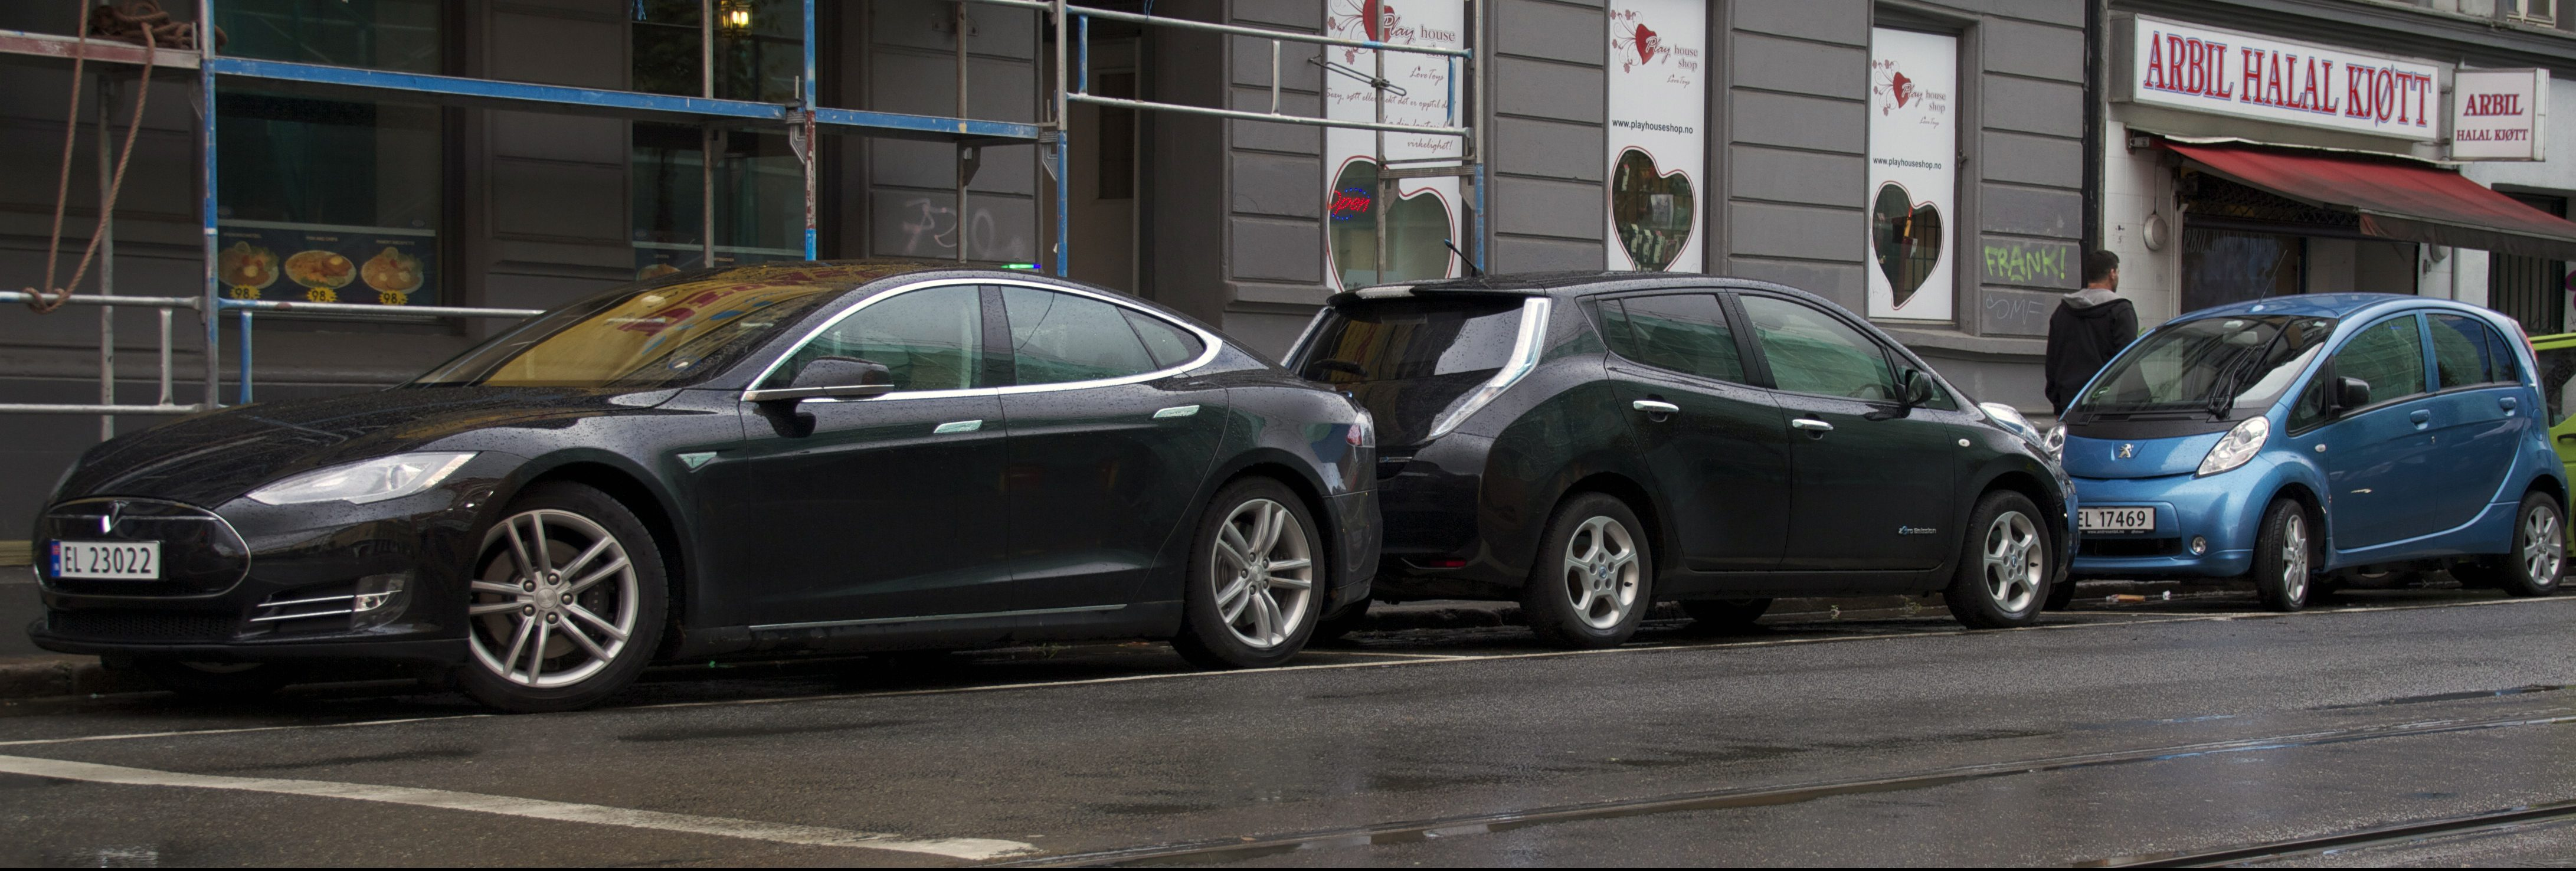 tesla_model_s_nissan_leaf_peugeot_ion_buddy_thnk_in_oslo_2013_cropped